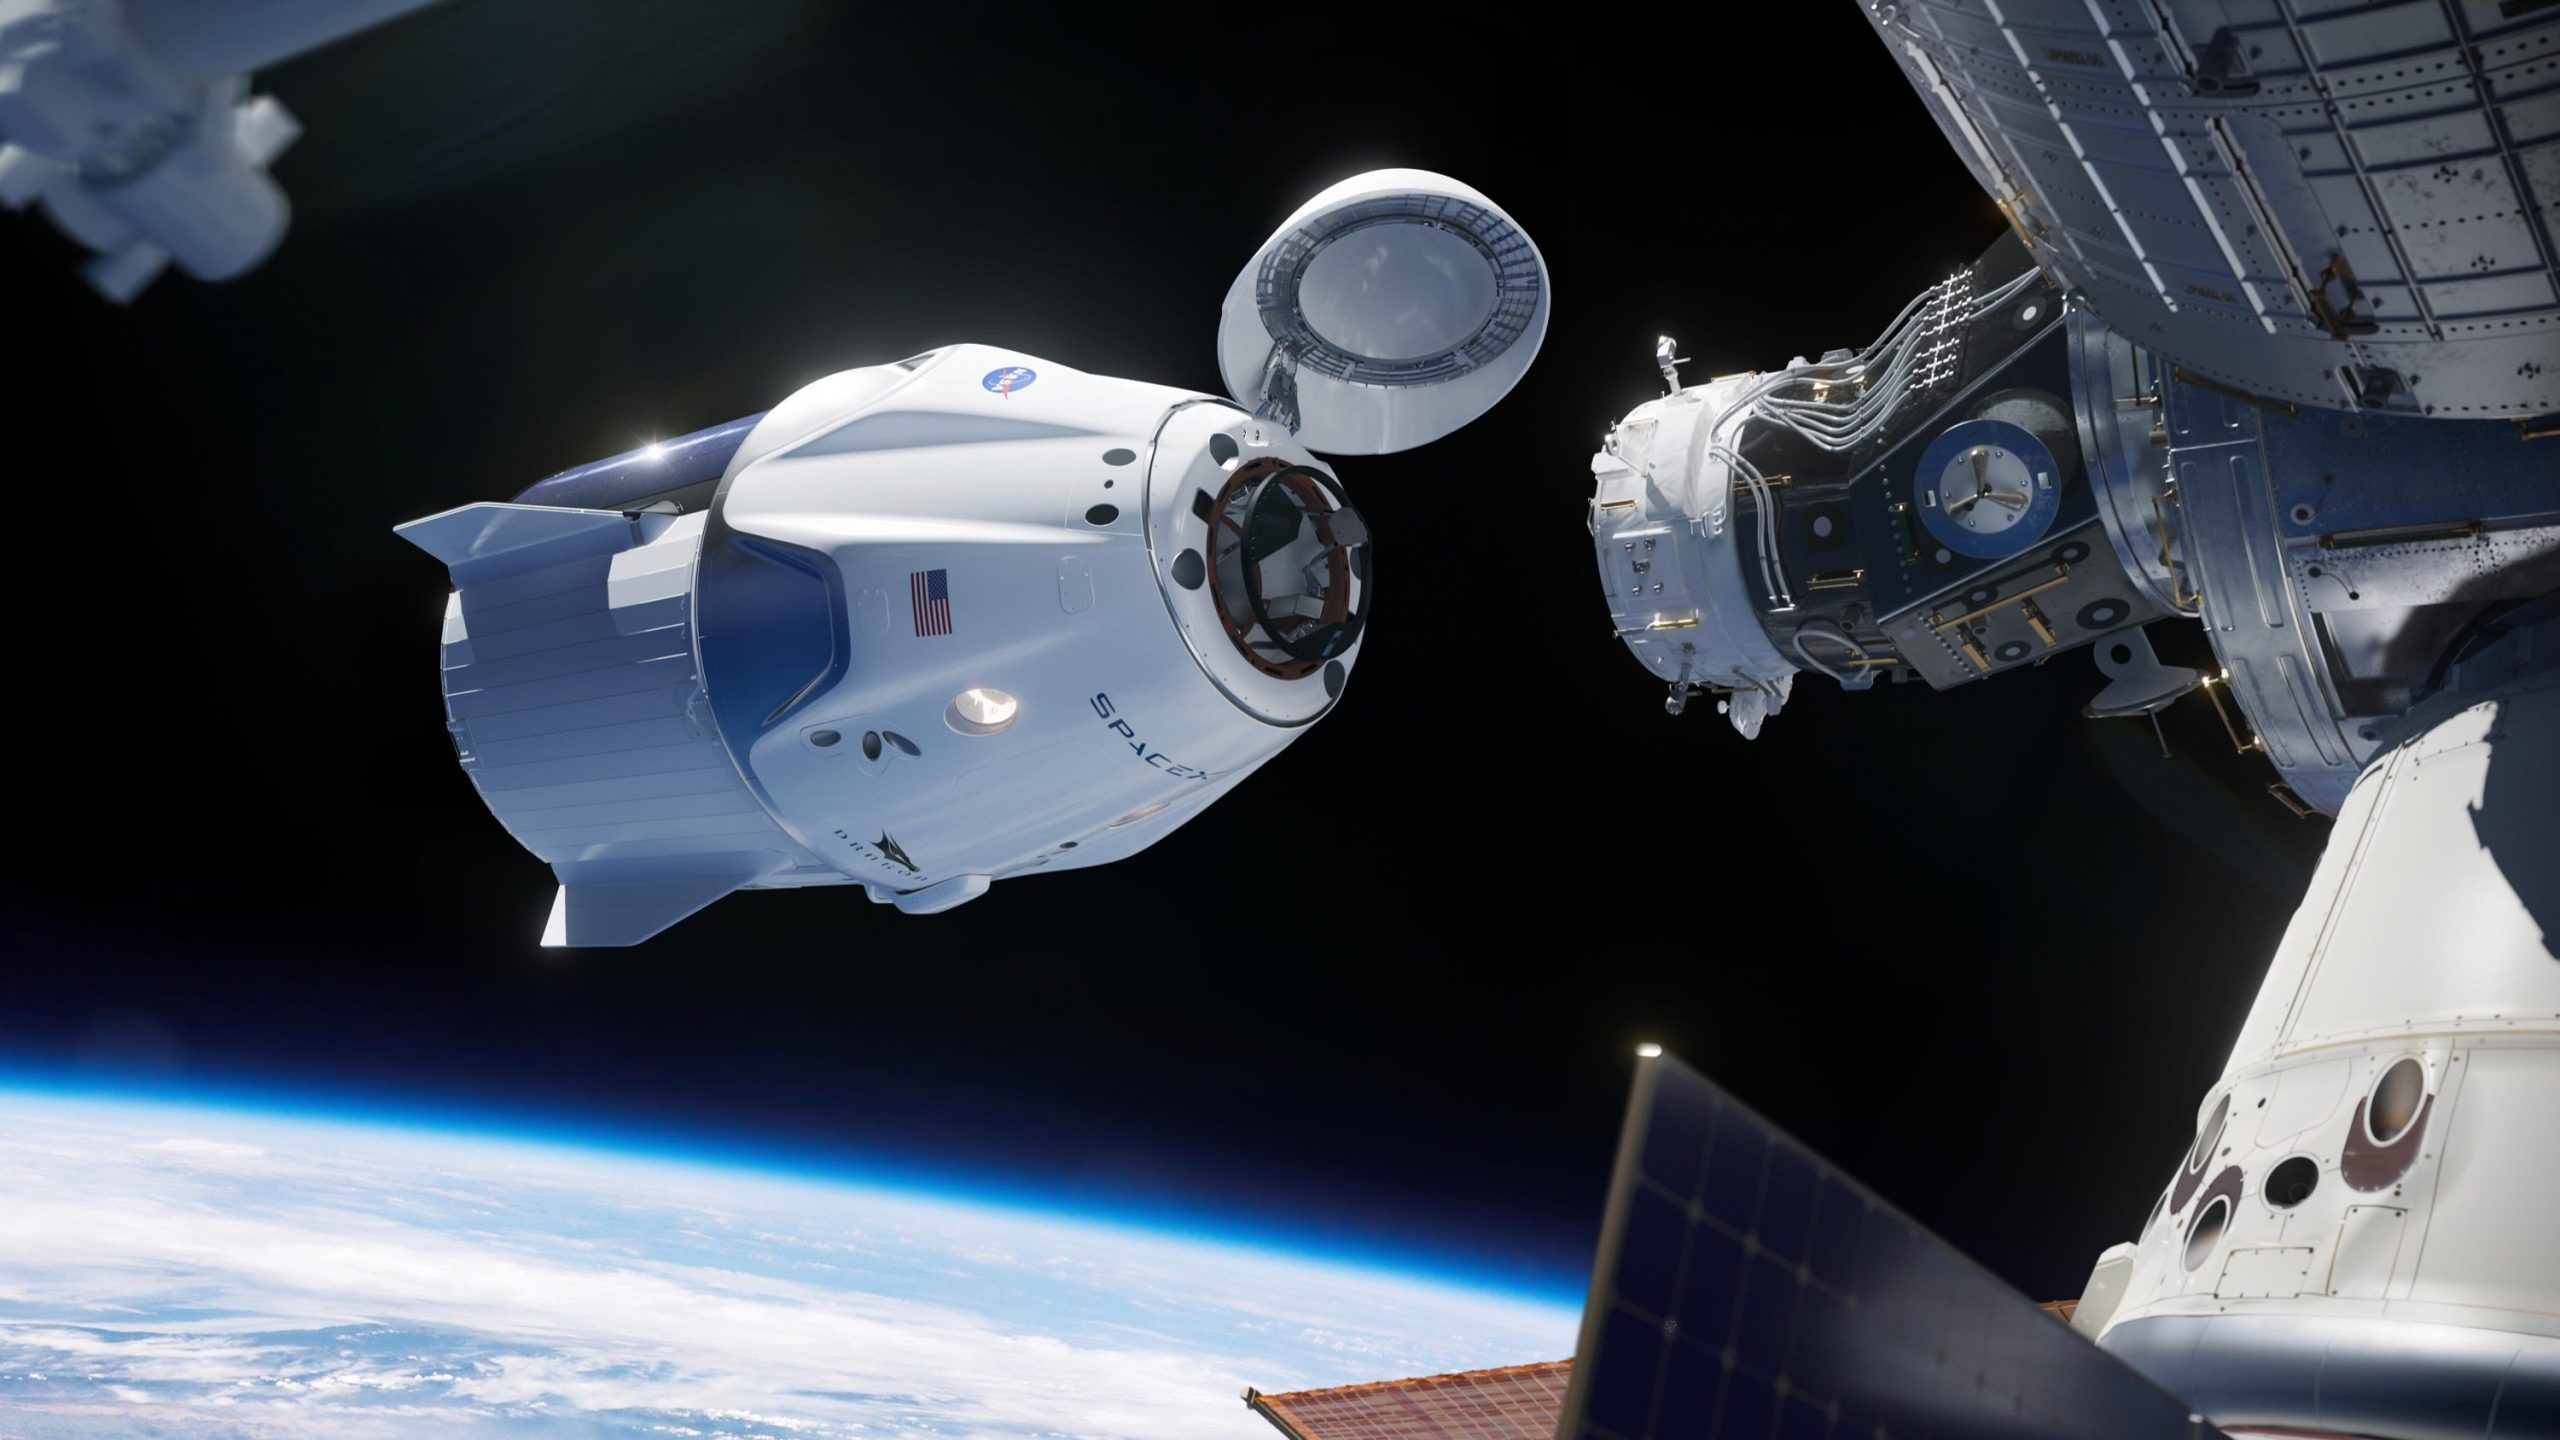 Two SpaceX crew spacecraft are now docked to the space station